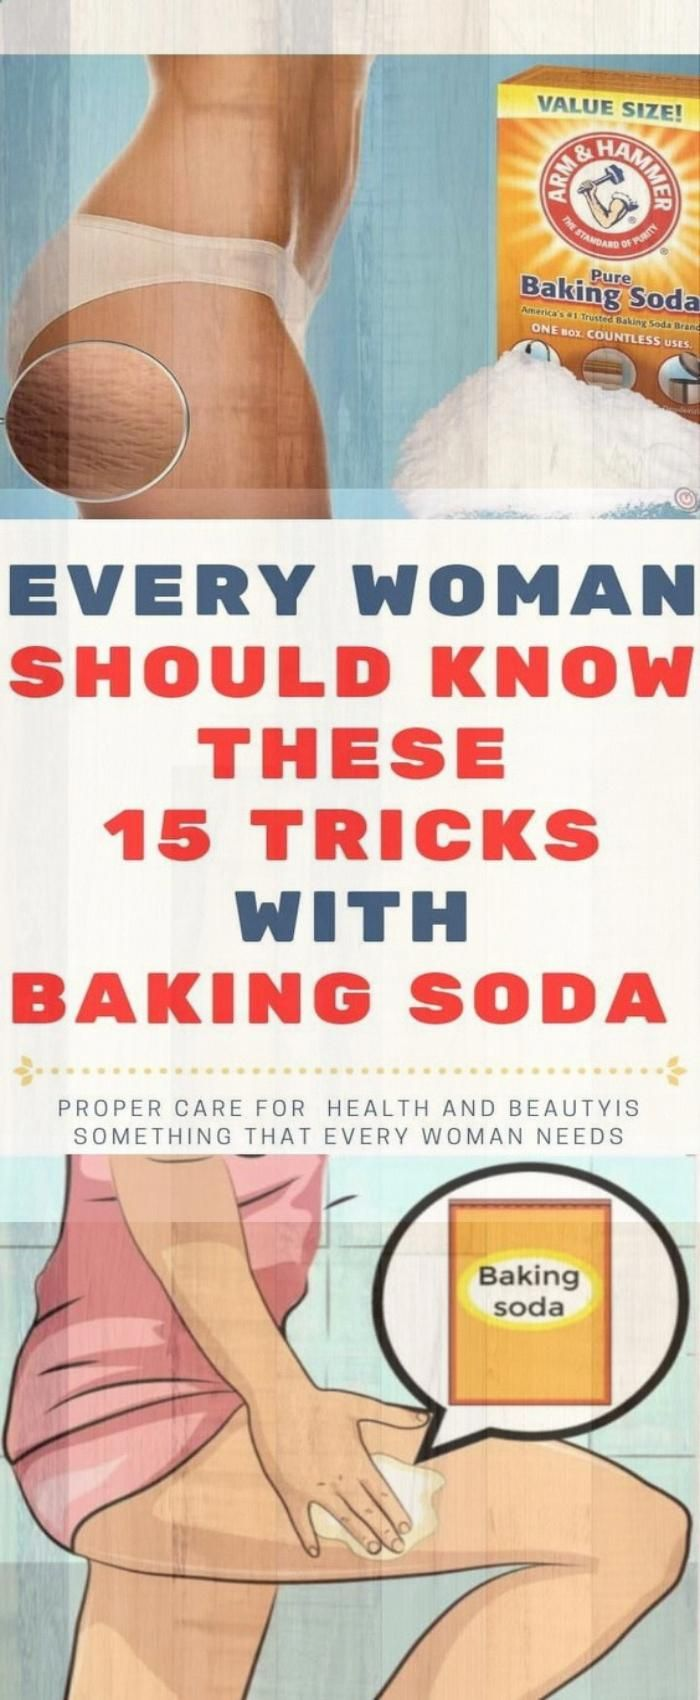 Every Woman Should Know These 15 Tricks With Baking Soda!!! #BakingSodaBenefits #health #fitness #tr...